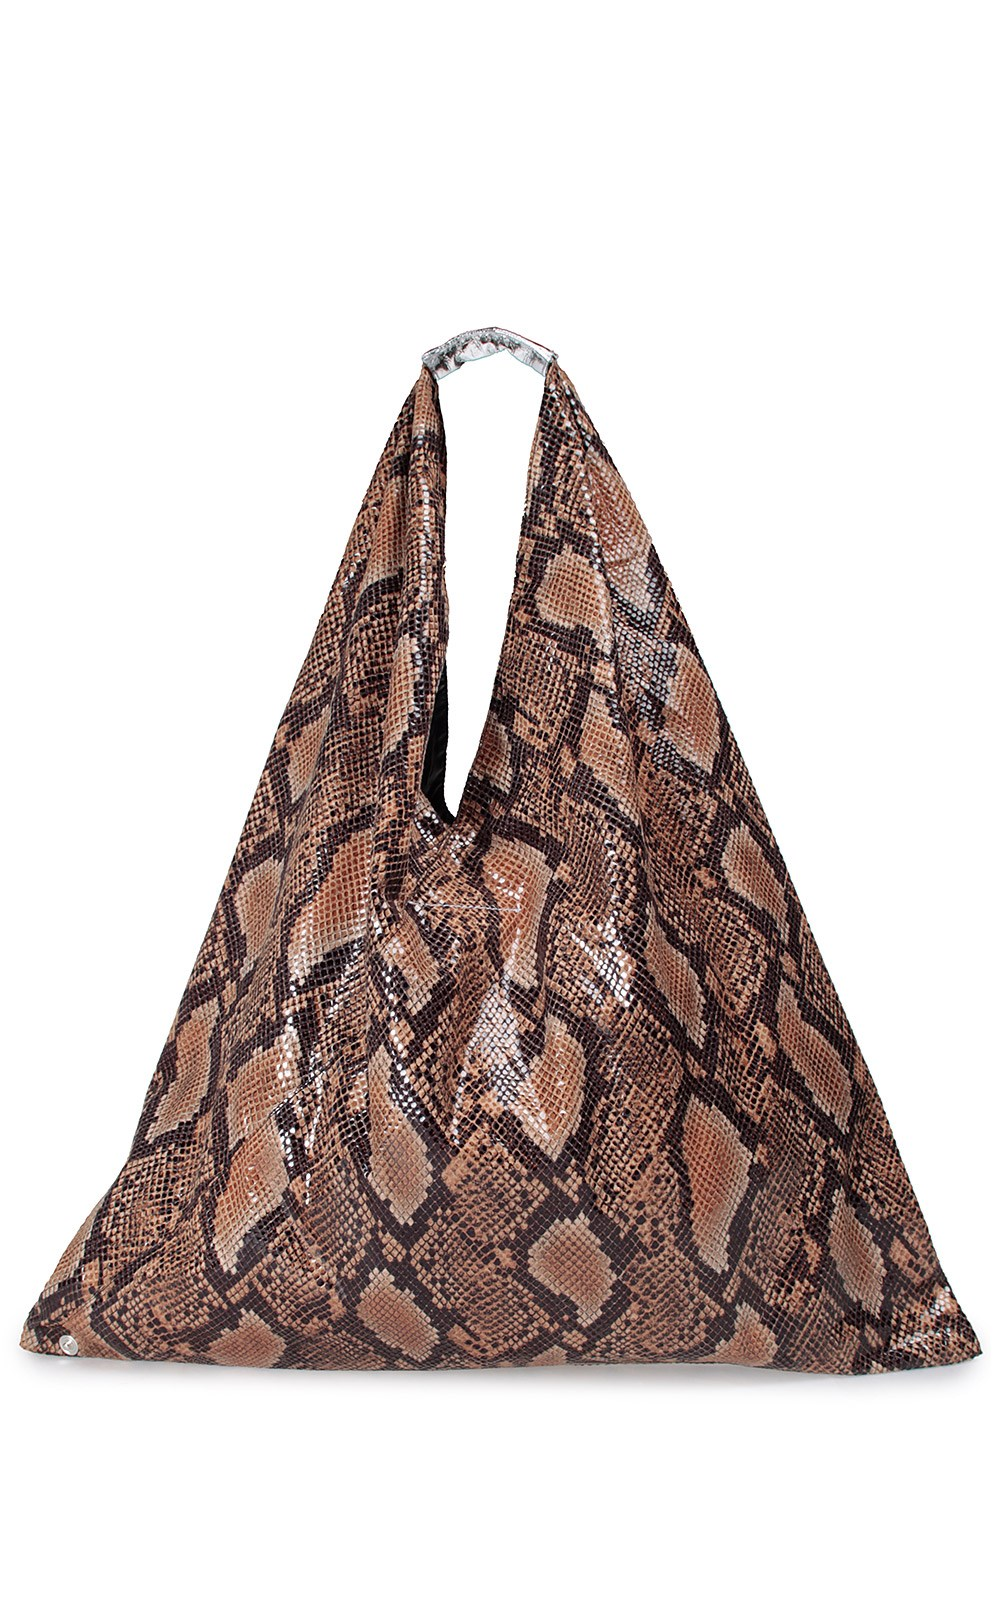 Japanese snake-print tote bag MM6 MAISON MARGIELA